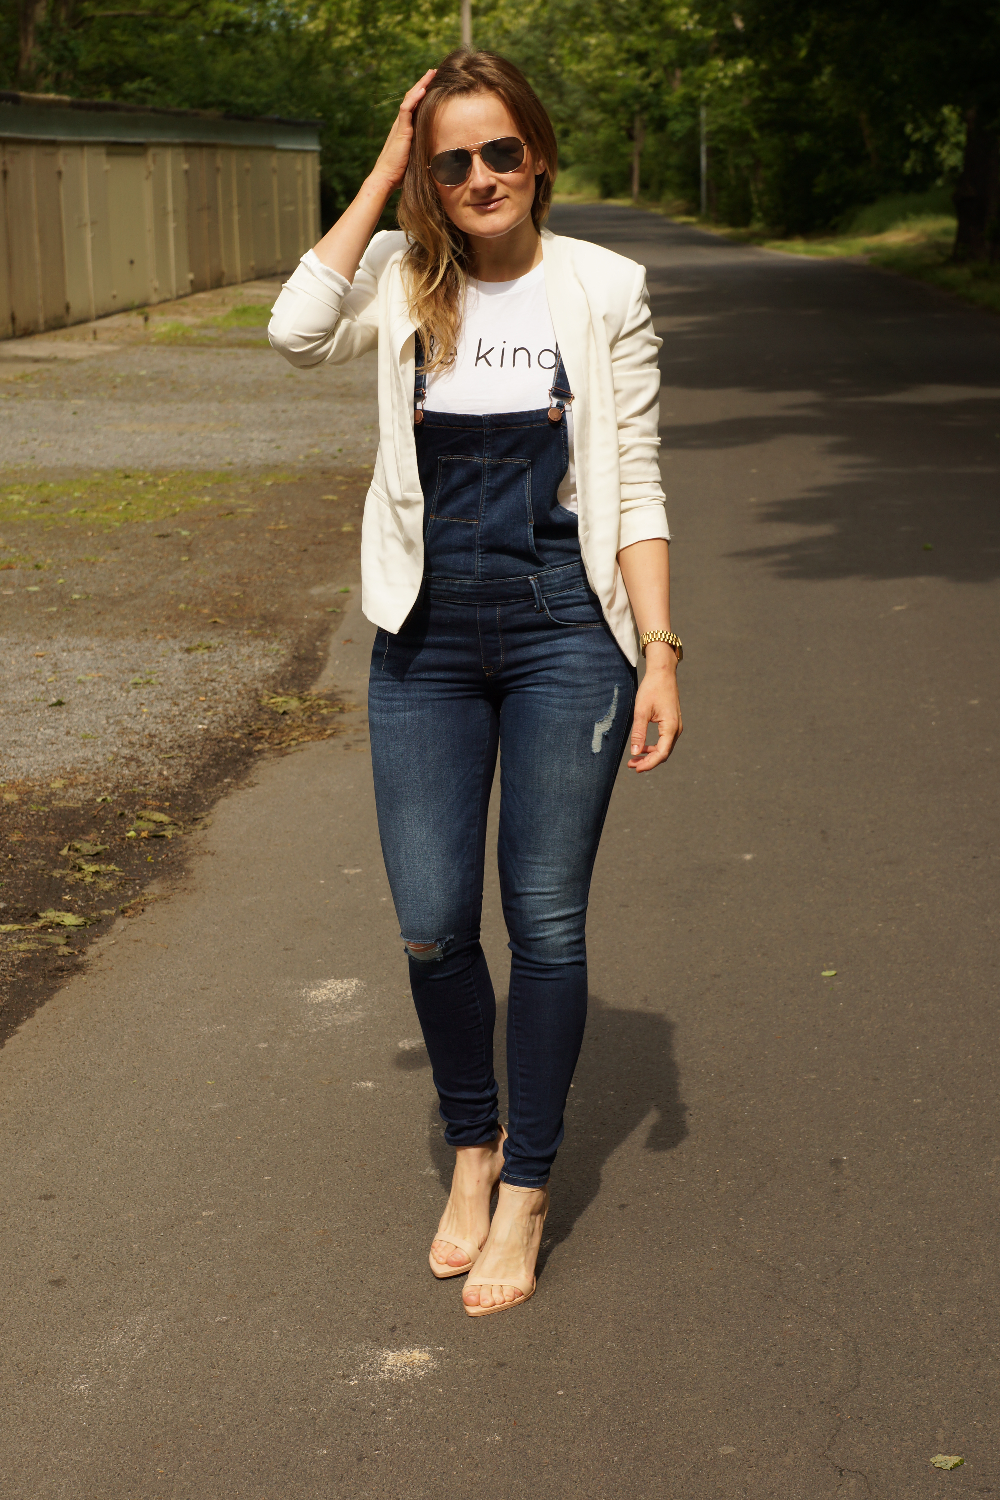 Overall + Heels + White Blazer + Be kind